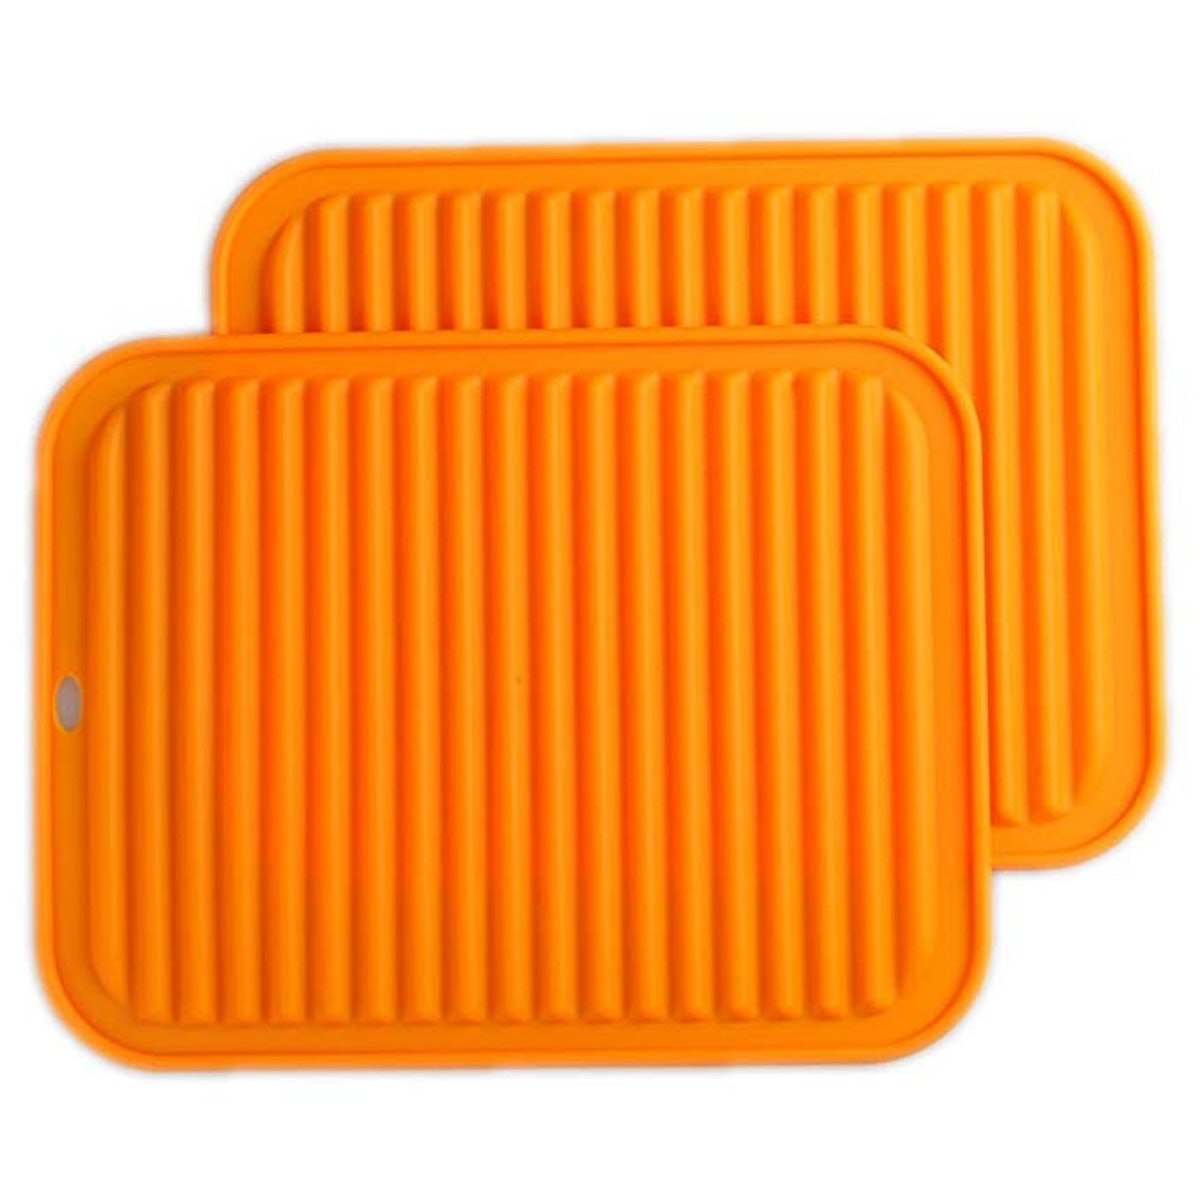 Smithcraft Silicone Trivets Mat (2-Pack)